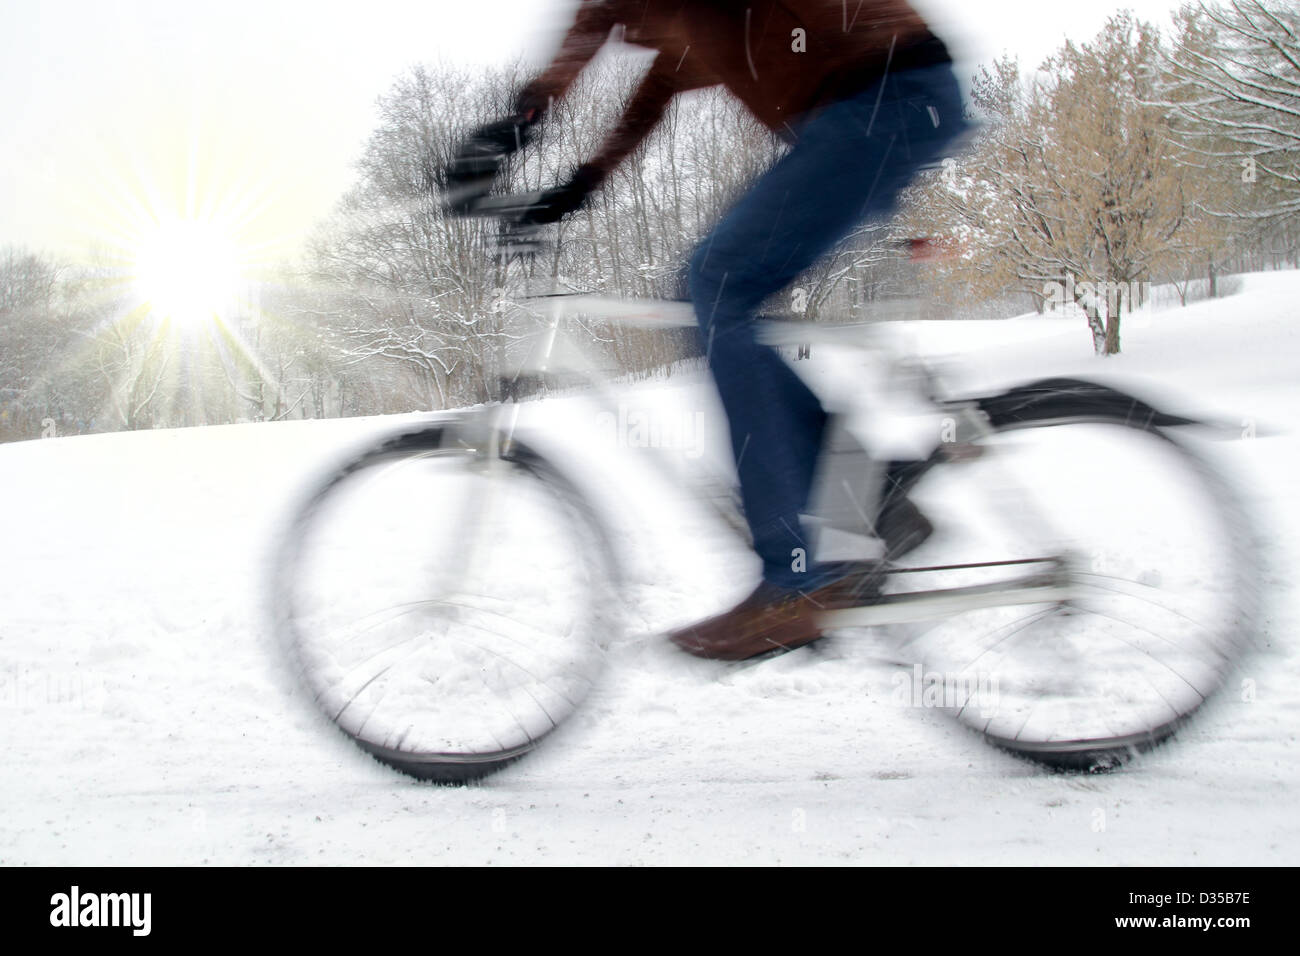 Dynamic cyclist with motion blur and nice winter sun - Stock Image